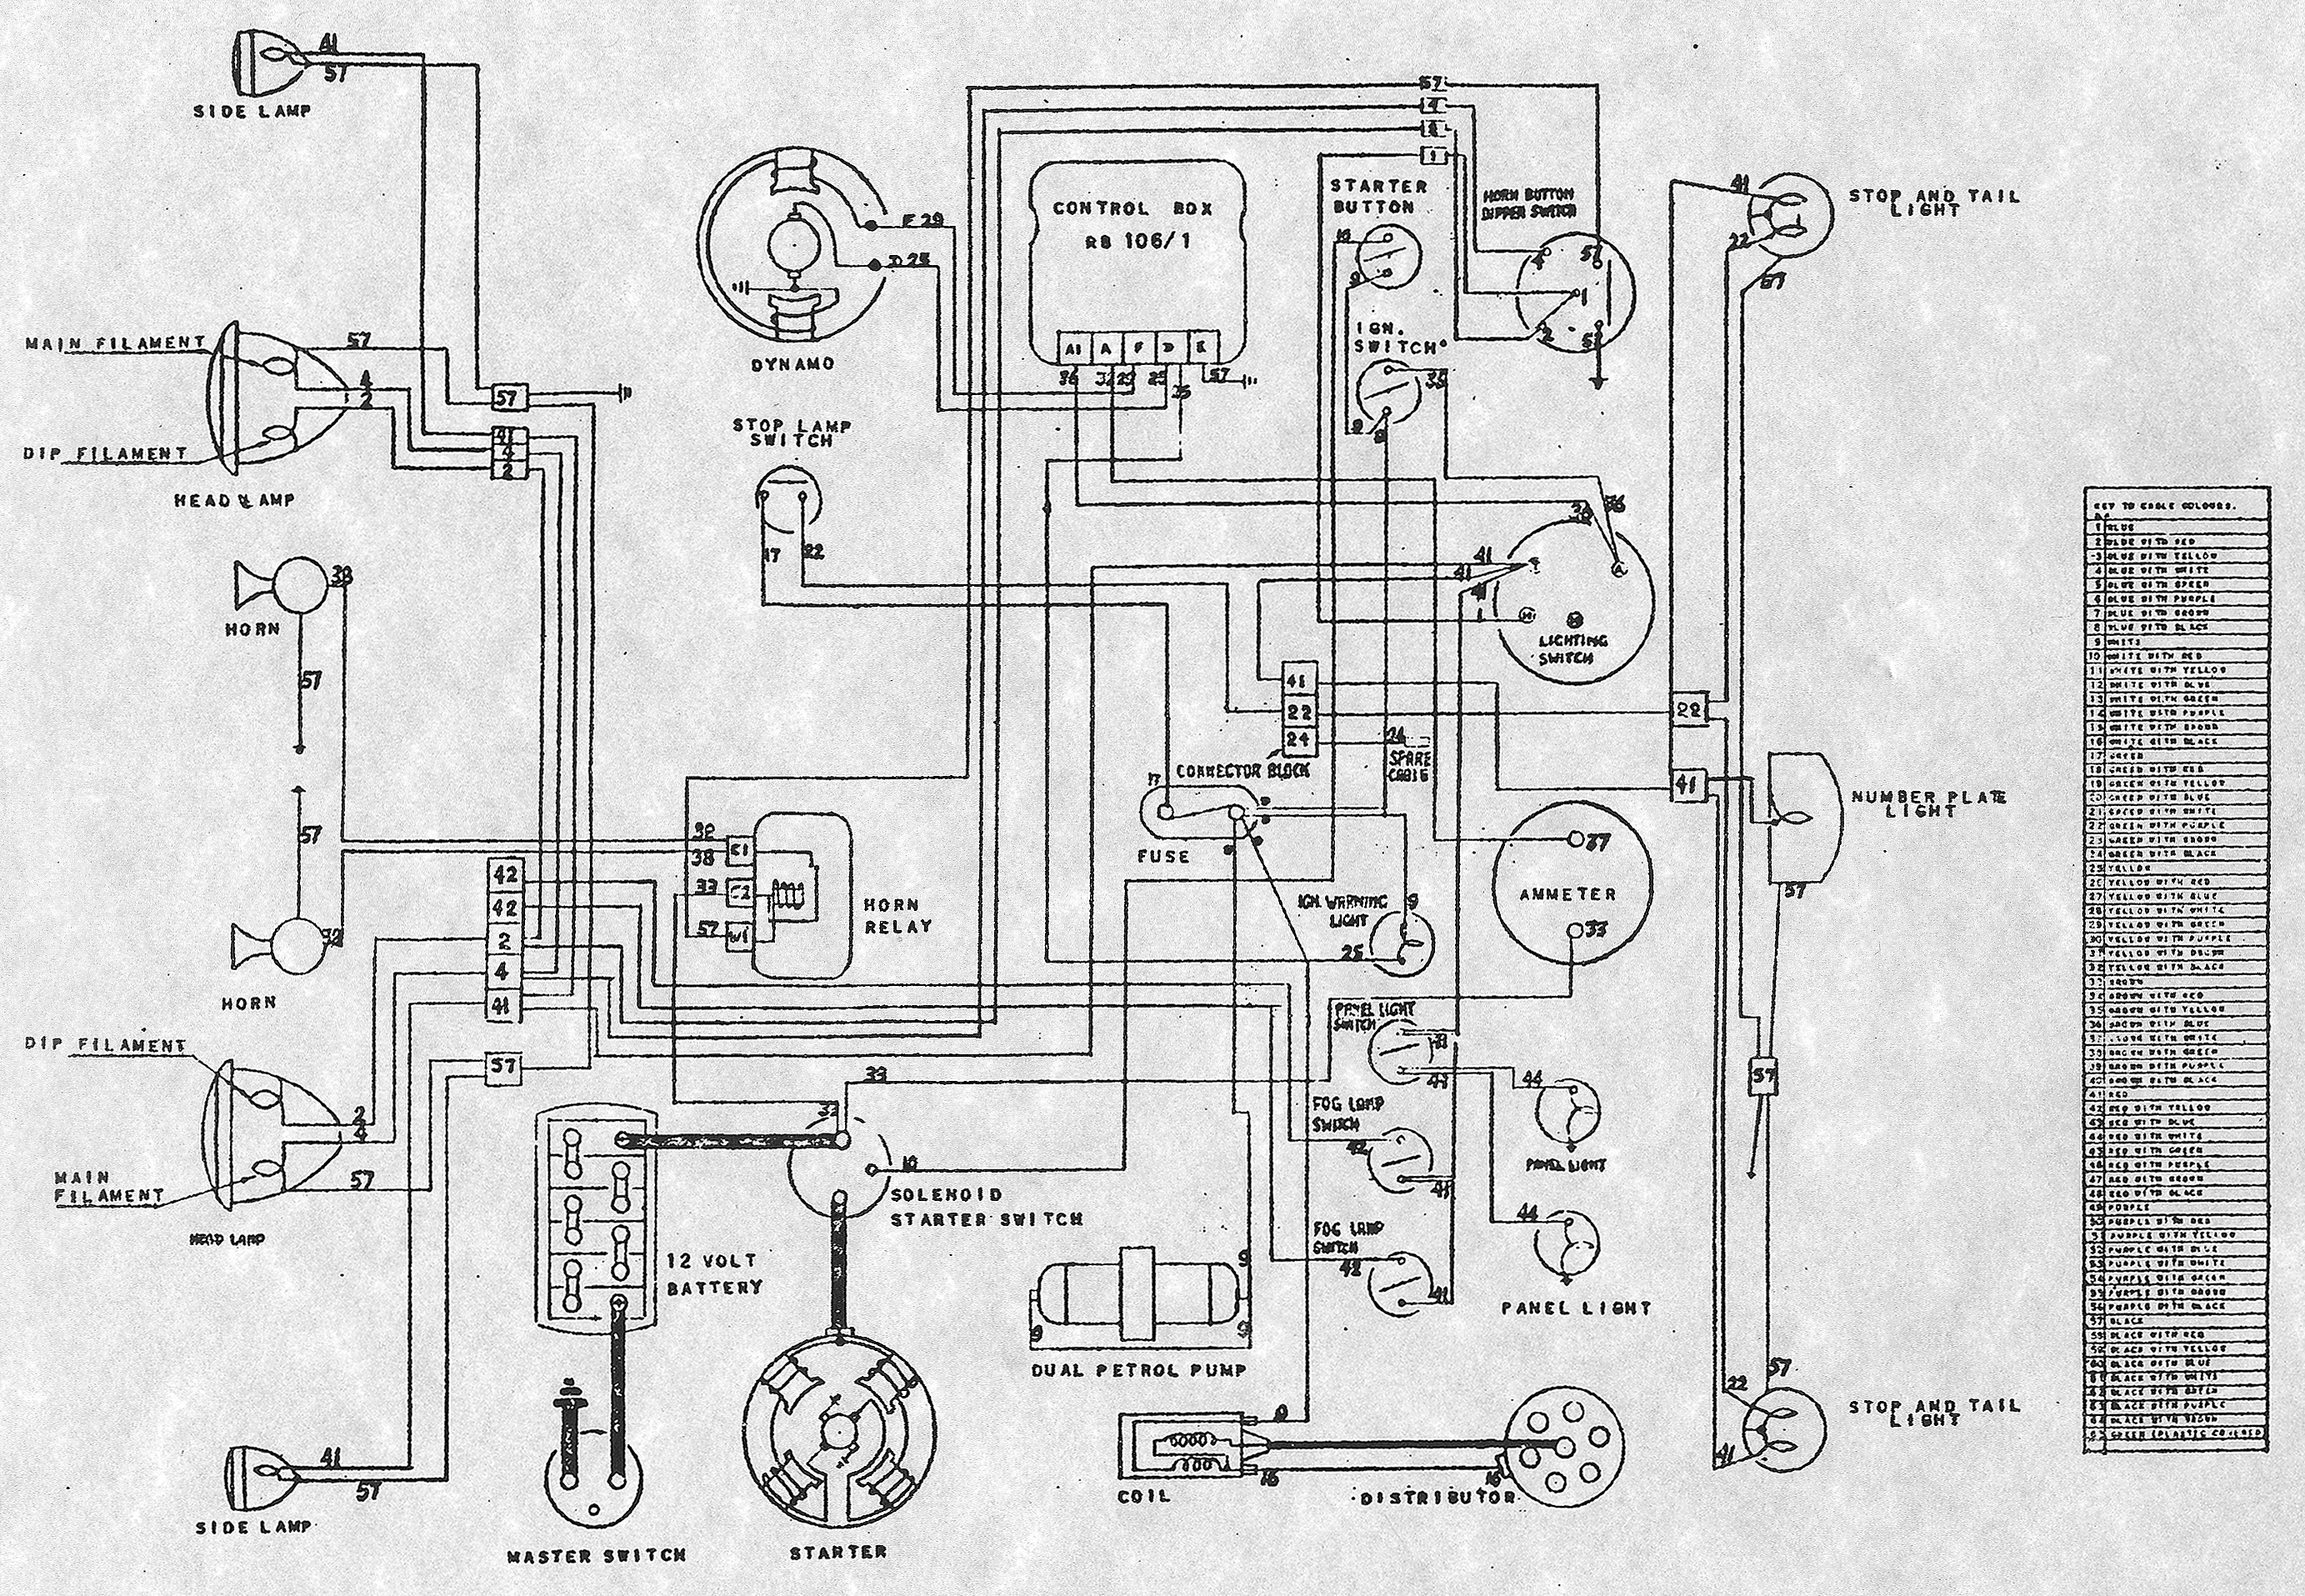 1957 mga roadster wiring diagram great installation of wiring 1957 mga wiring diagram wiring diagrams schema rh 3 valdeig media de mga dash wiring 1957